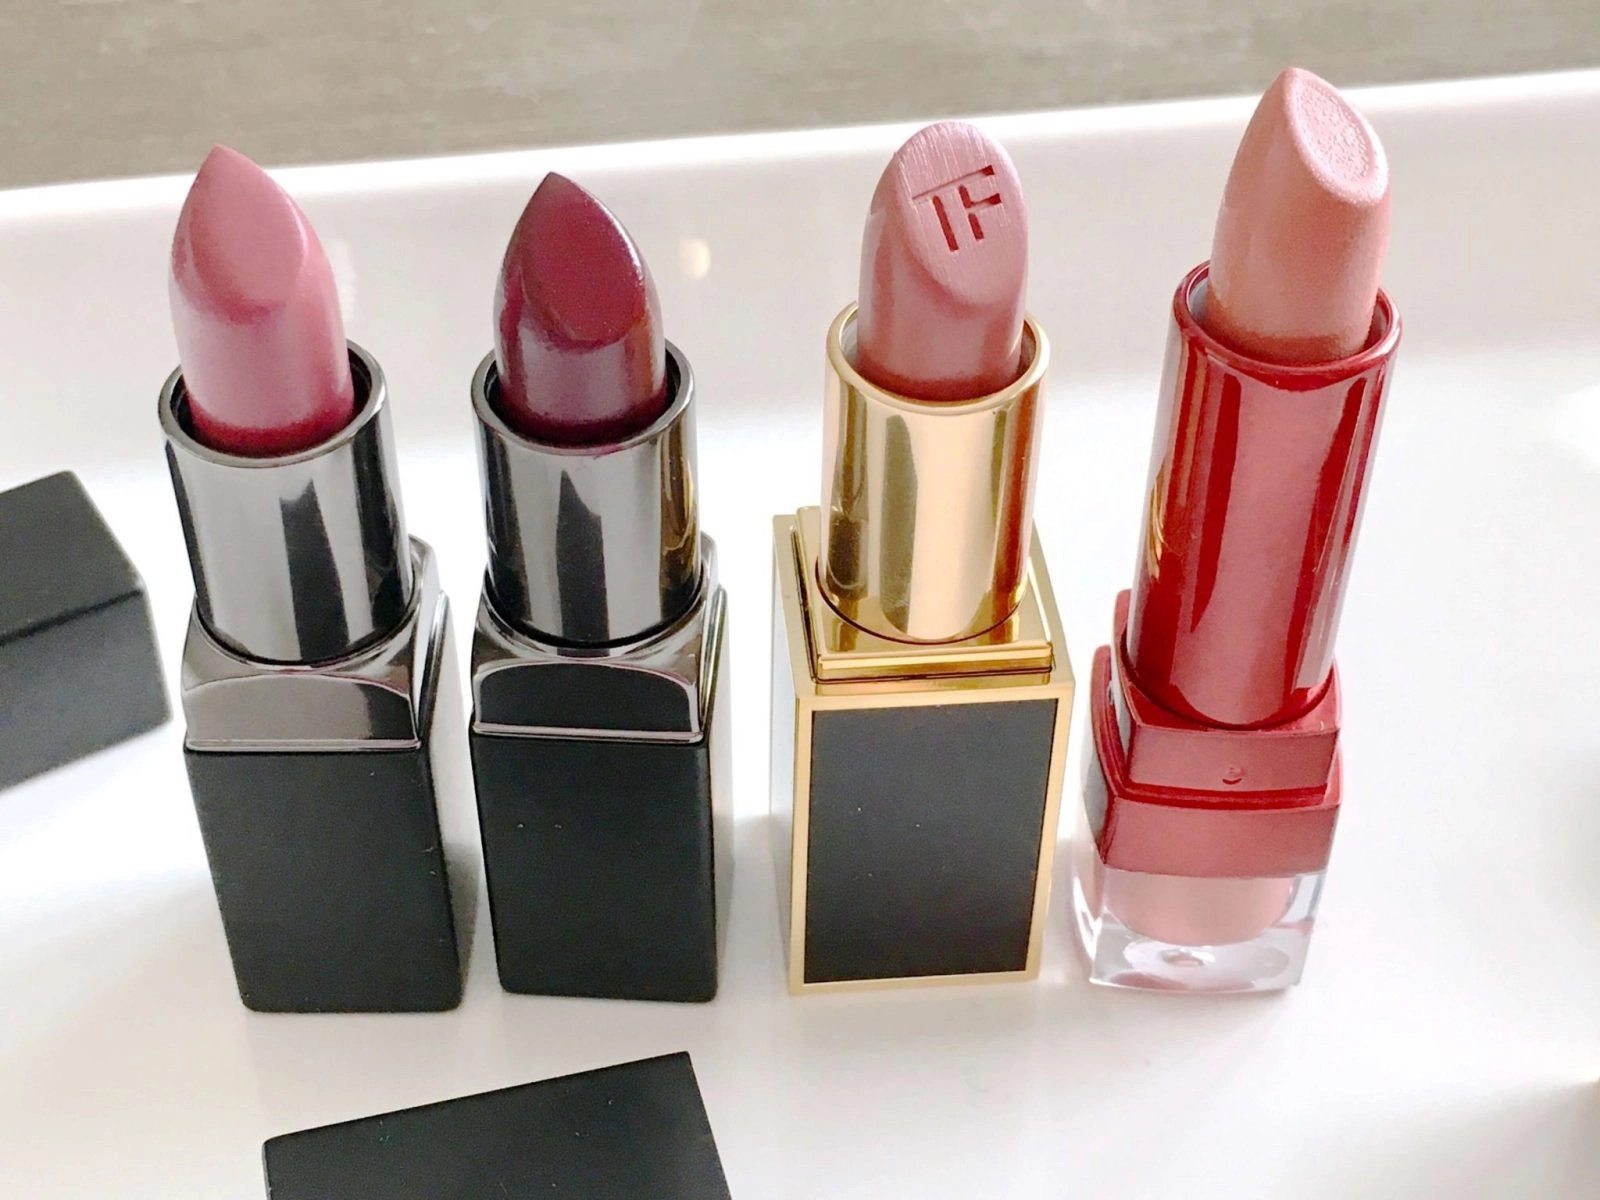 The top 4 lipsticks chosen